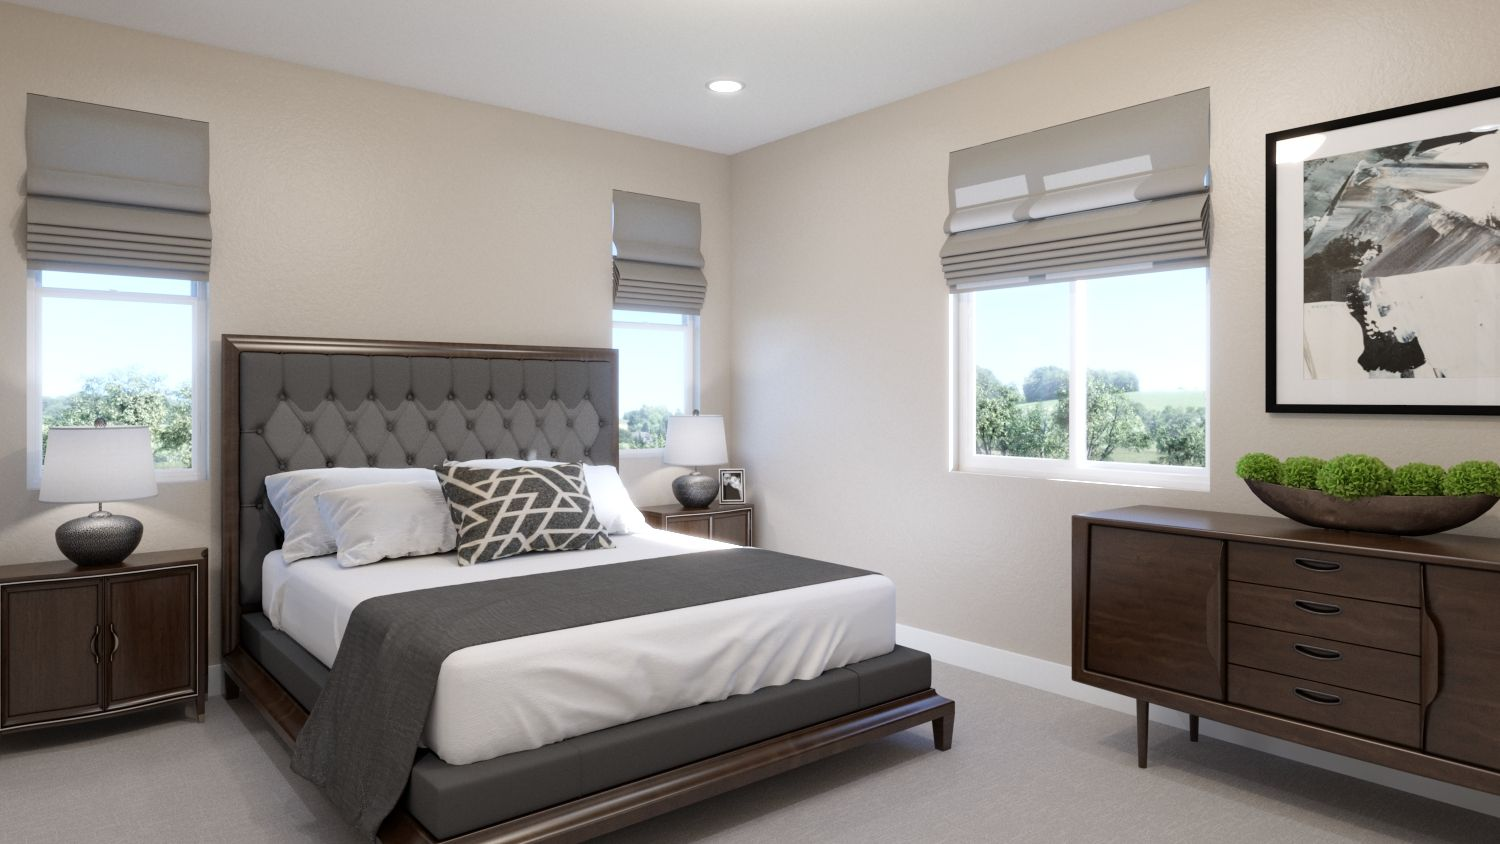 Bedroom featured in the Plan 4B By Melia in Orange County, CA